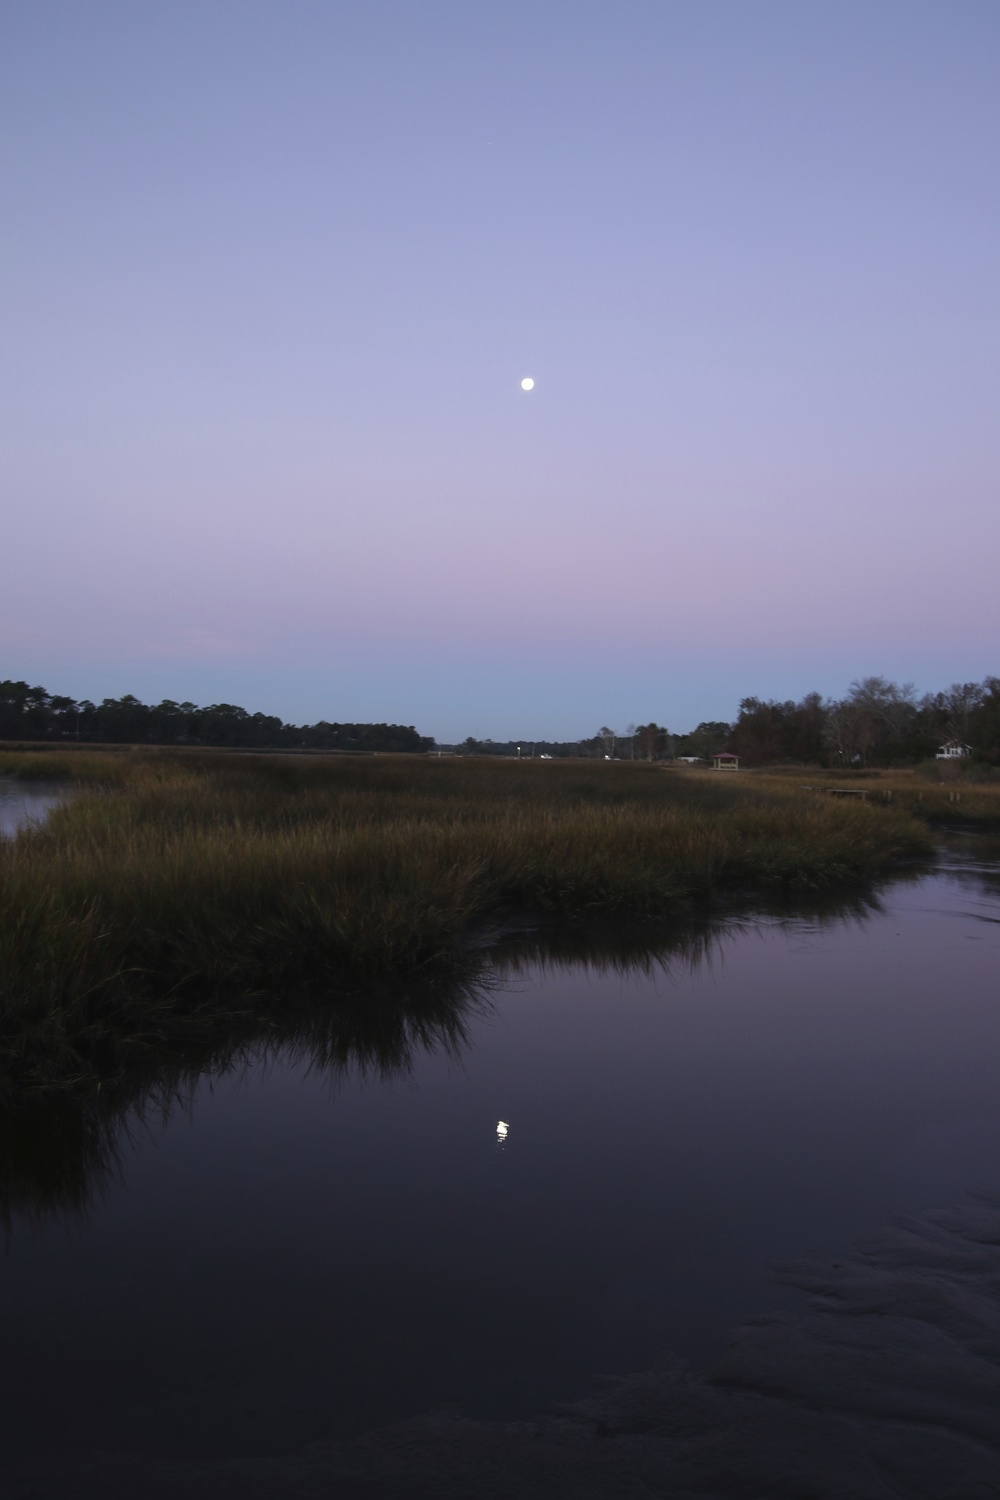 """BLUE HOUR"" PREDAWN PHOTO OF MOONSET ON THE BROWARD"